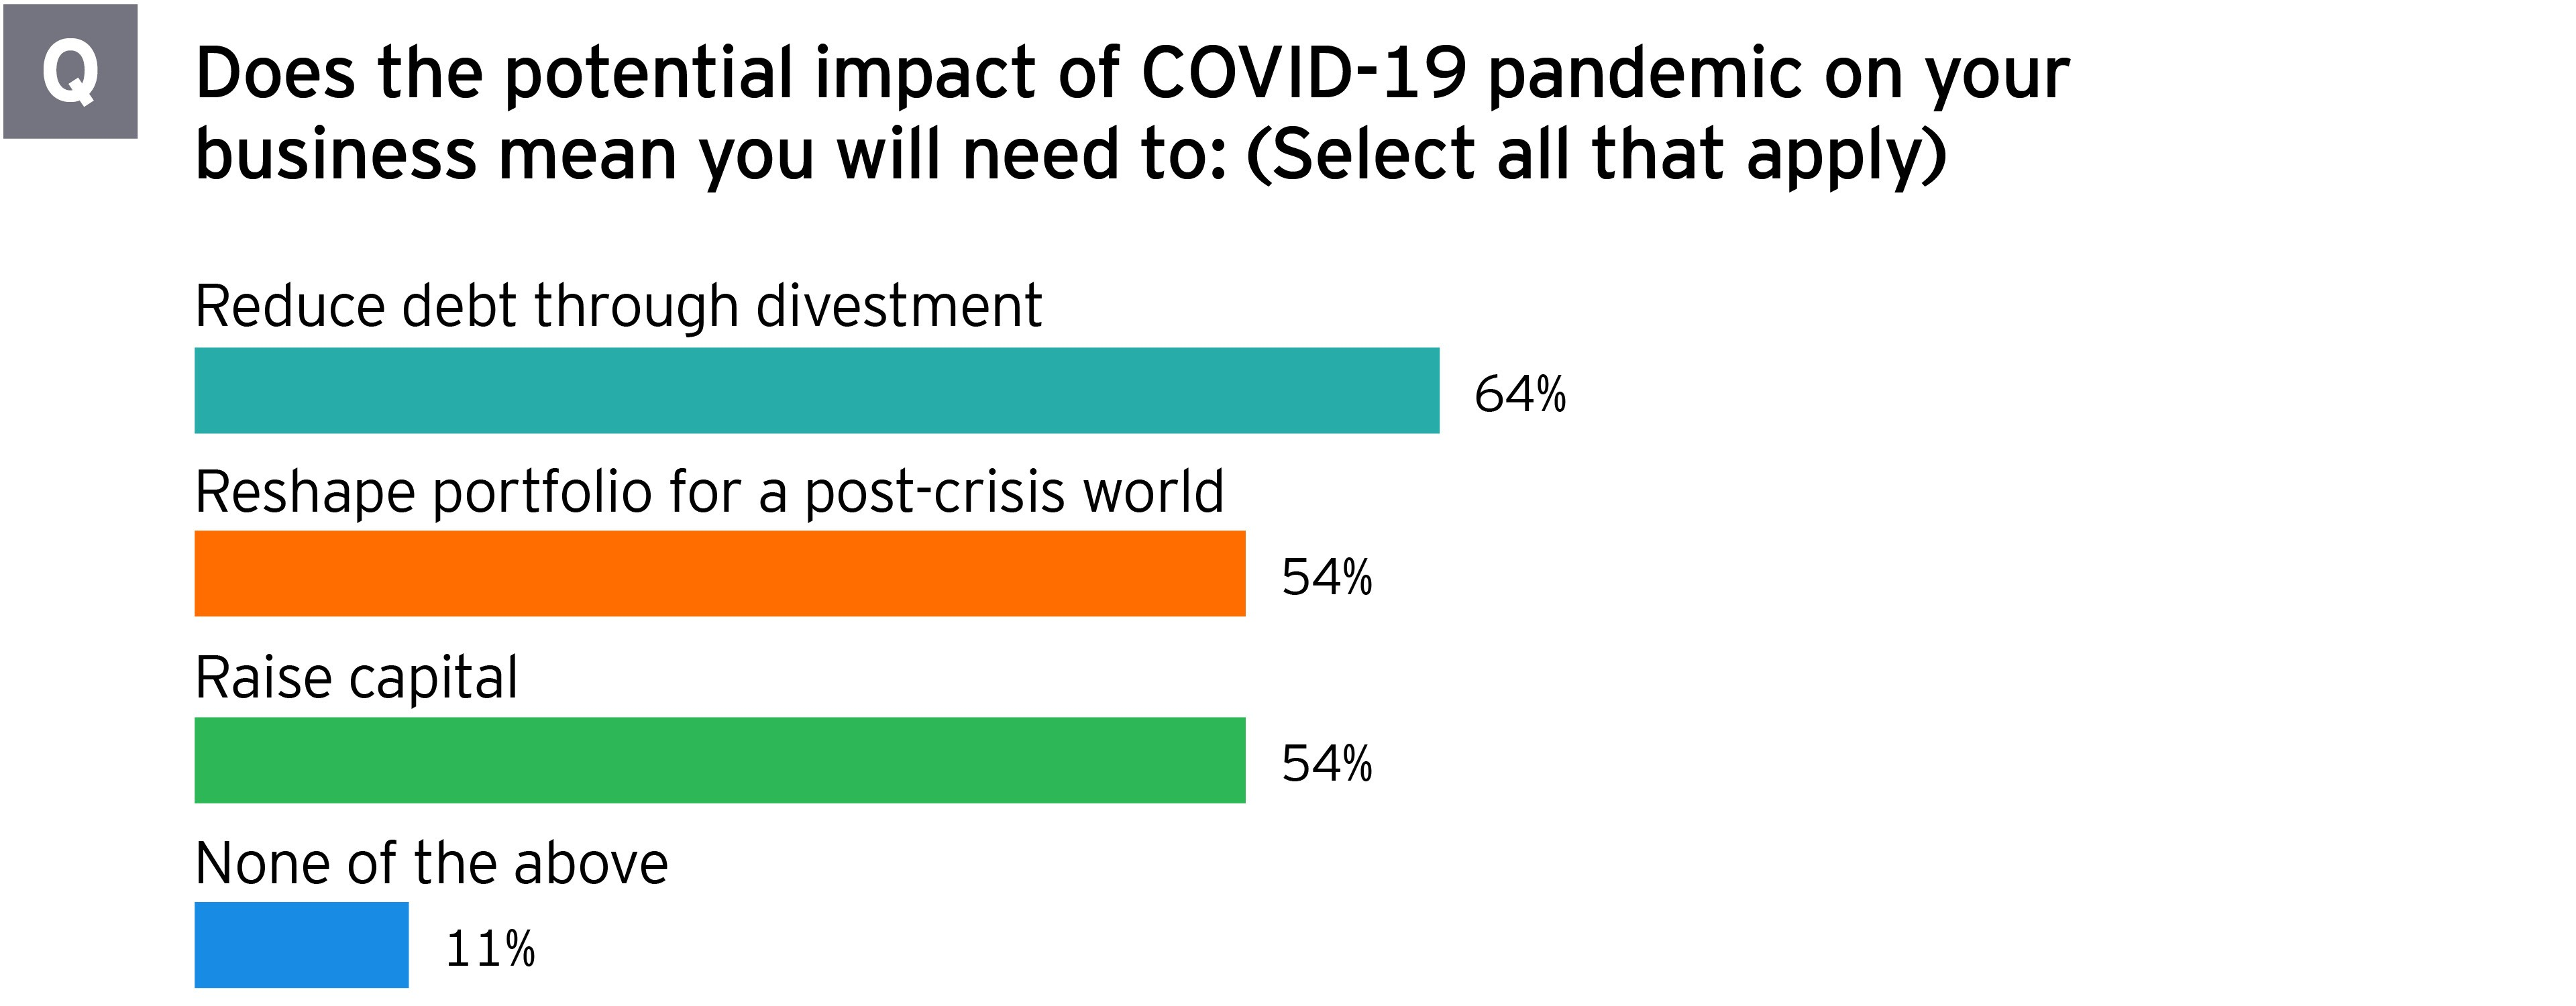 Asia-Pacific potential impact of COVID-19 on your business